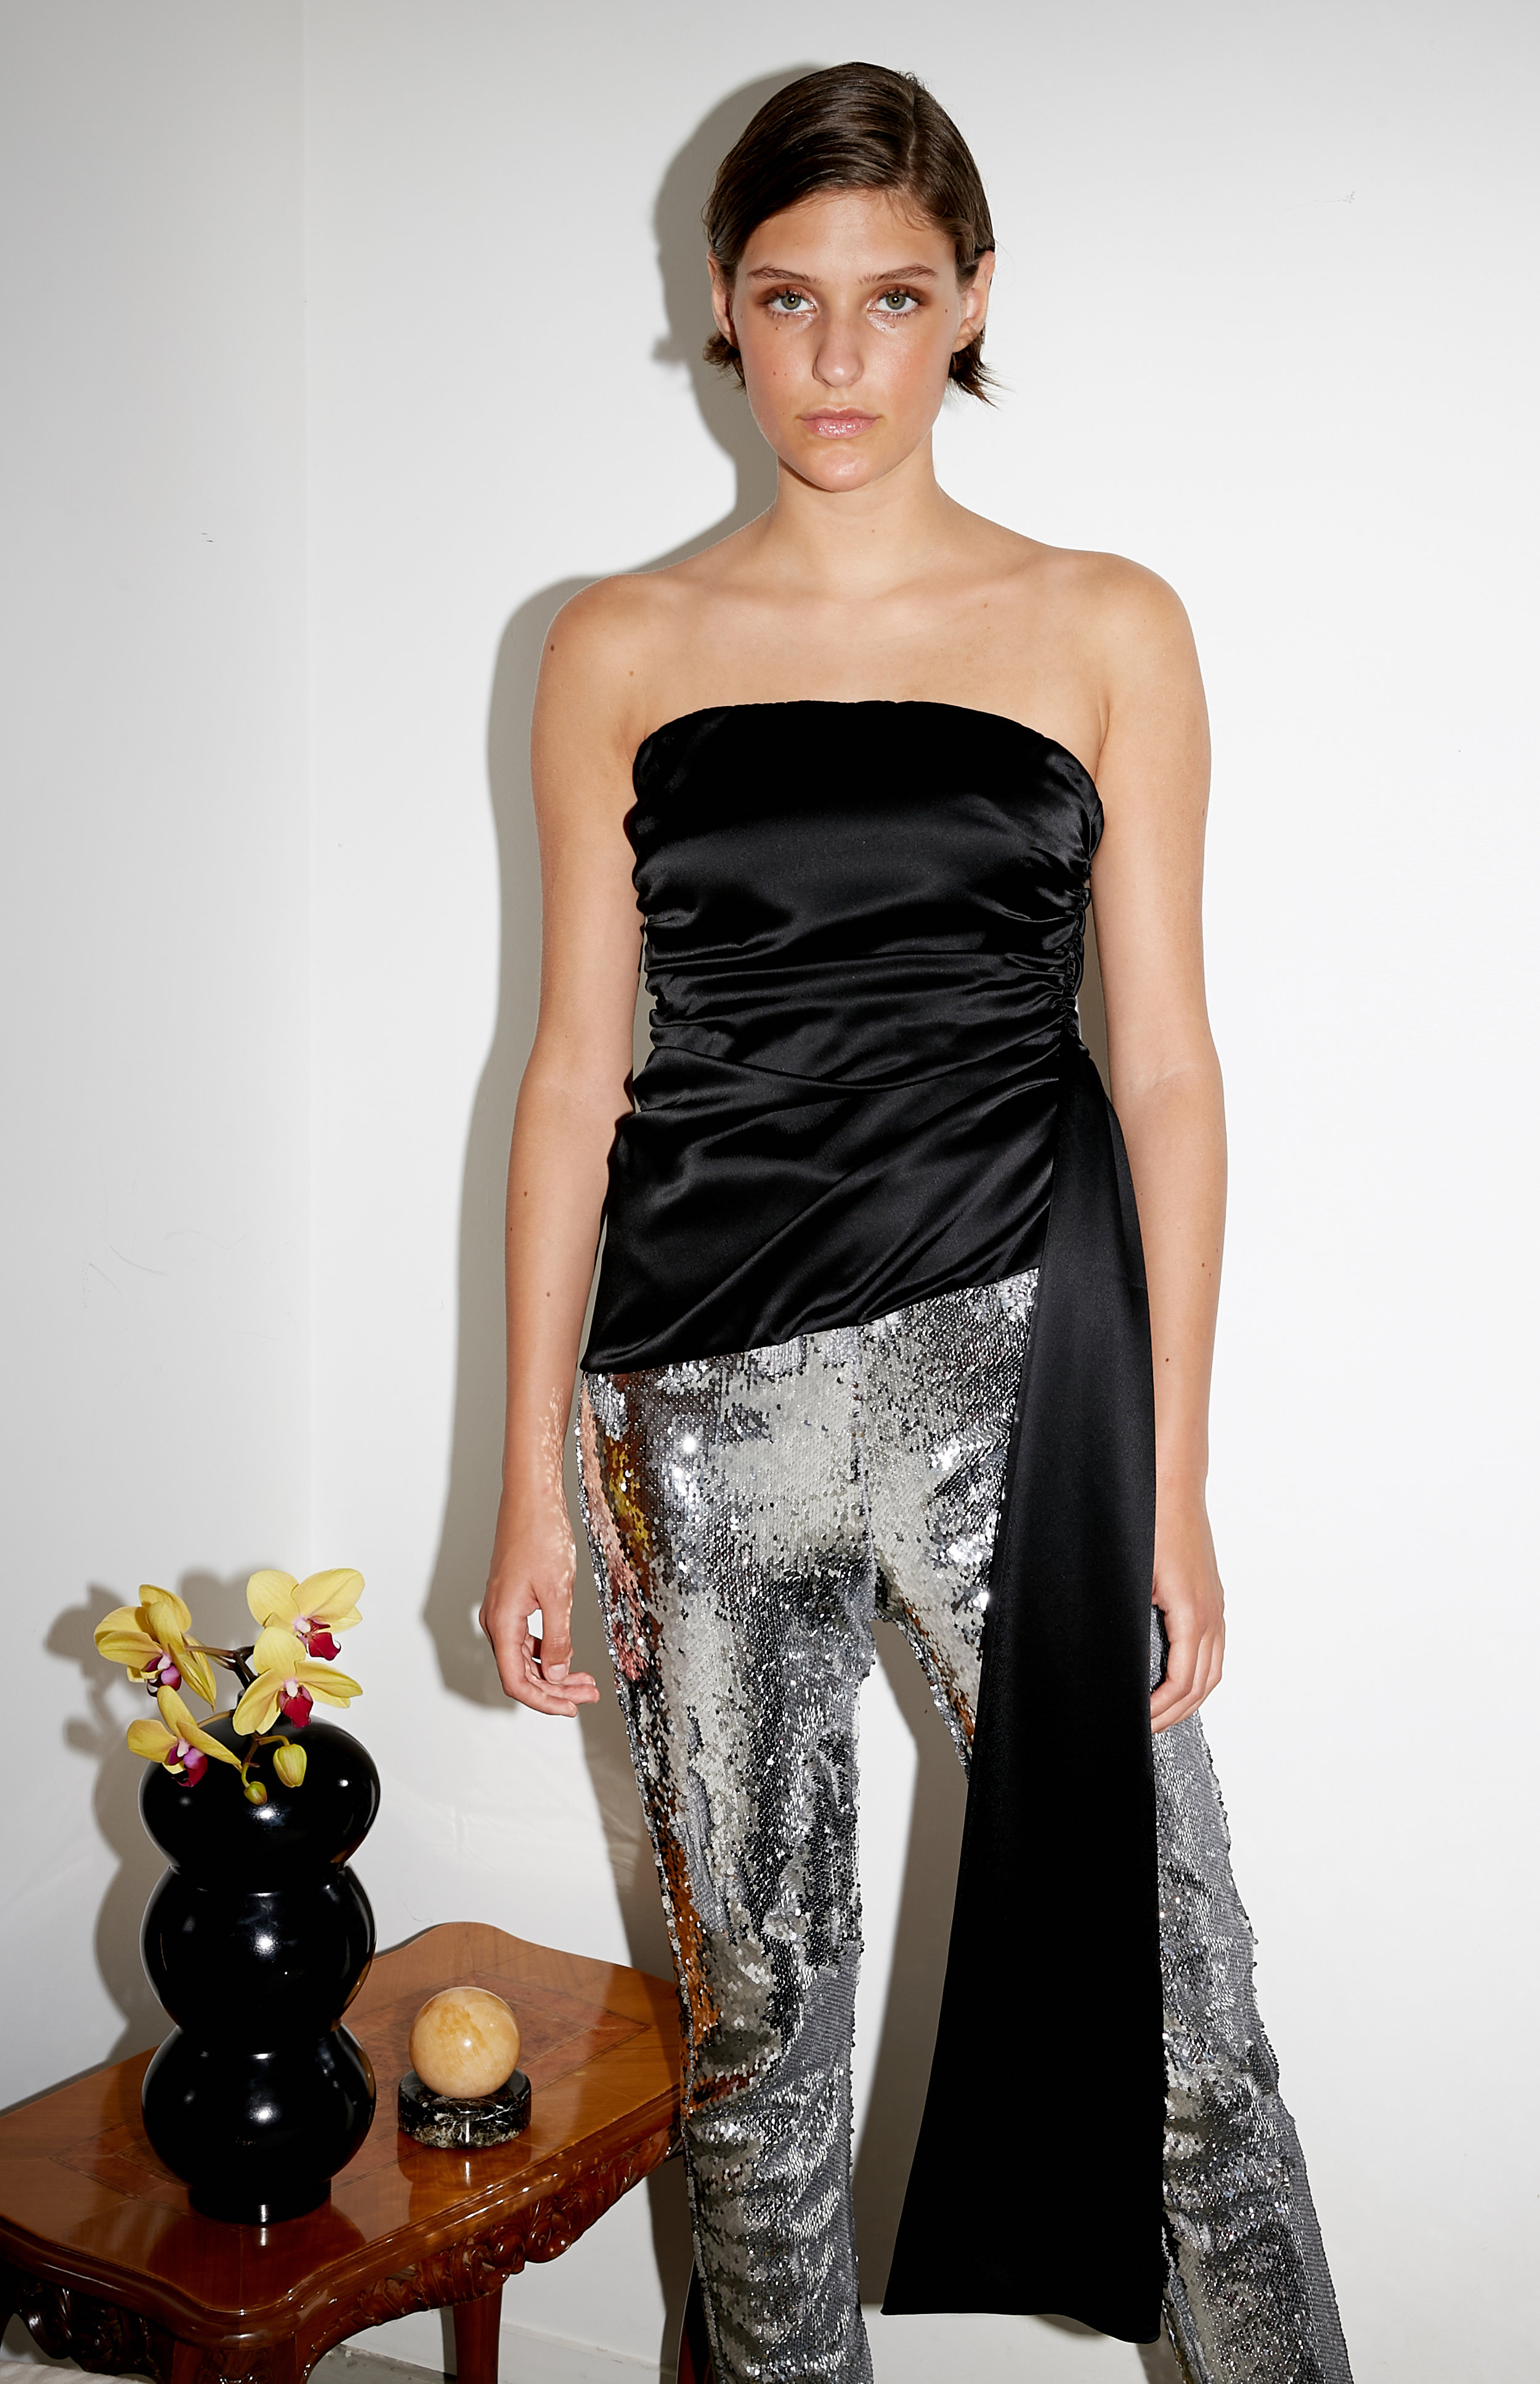 Model stands in black satin bandeau top with long sash detail and silver sequin pant